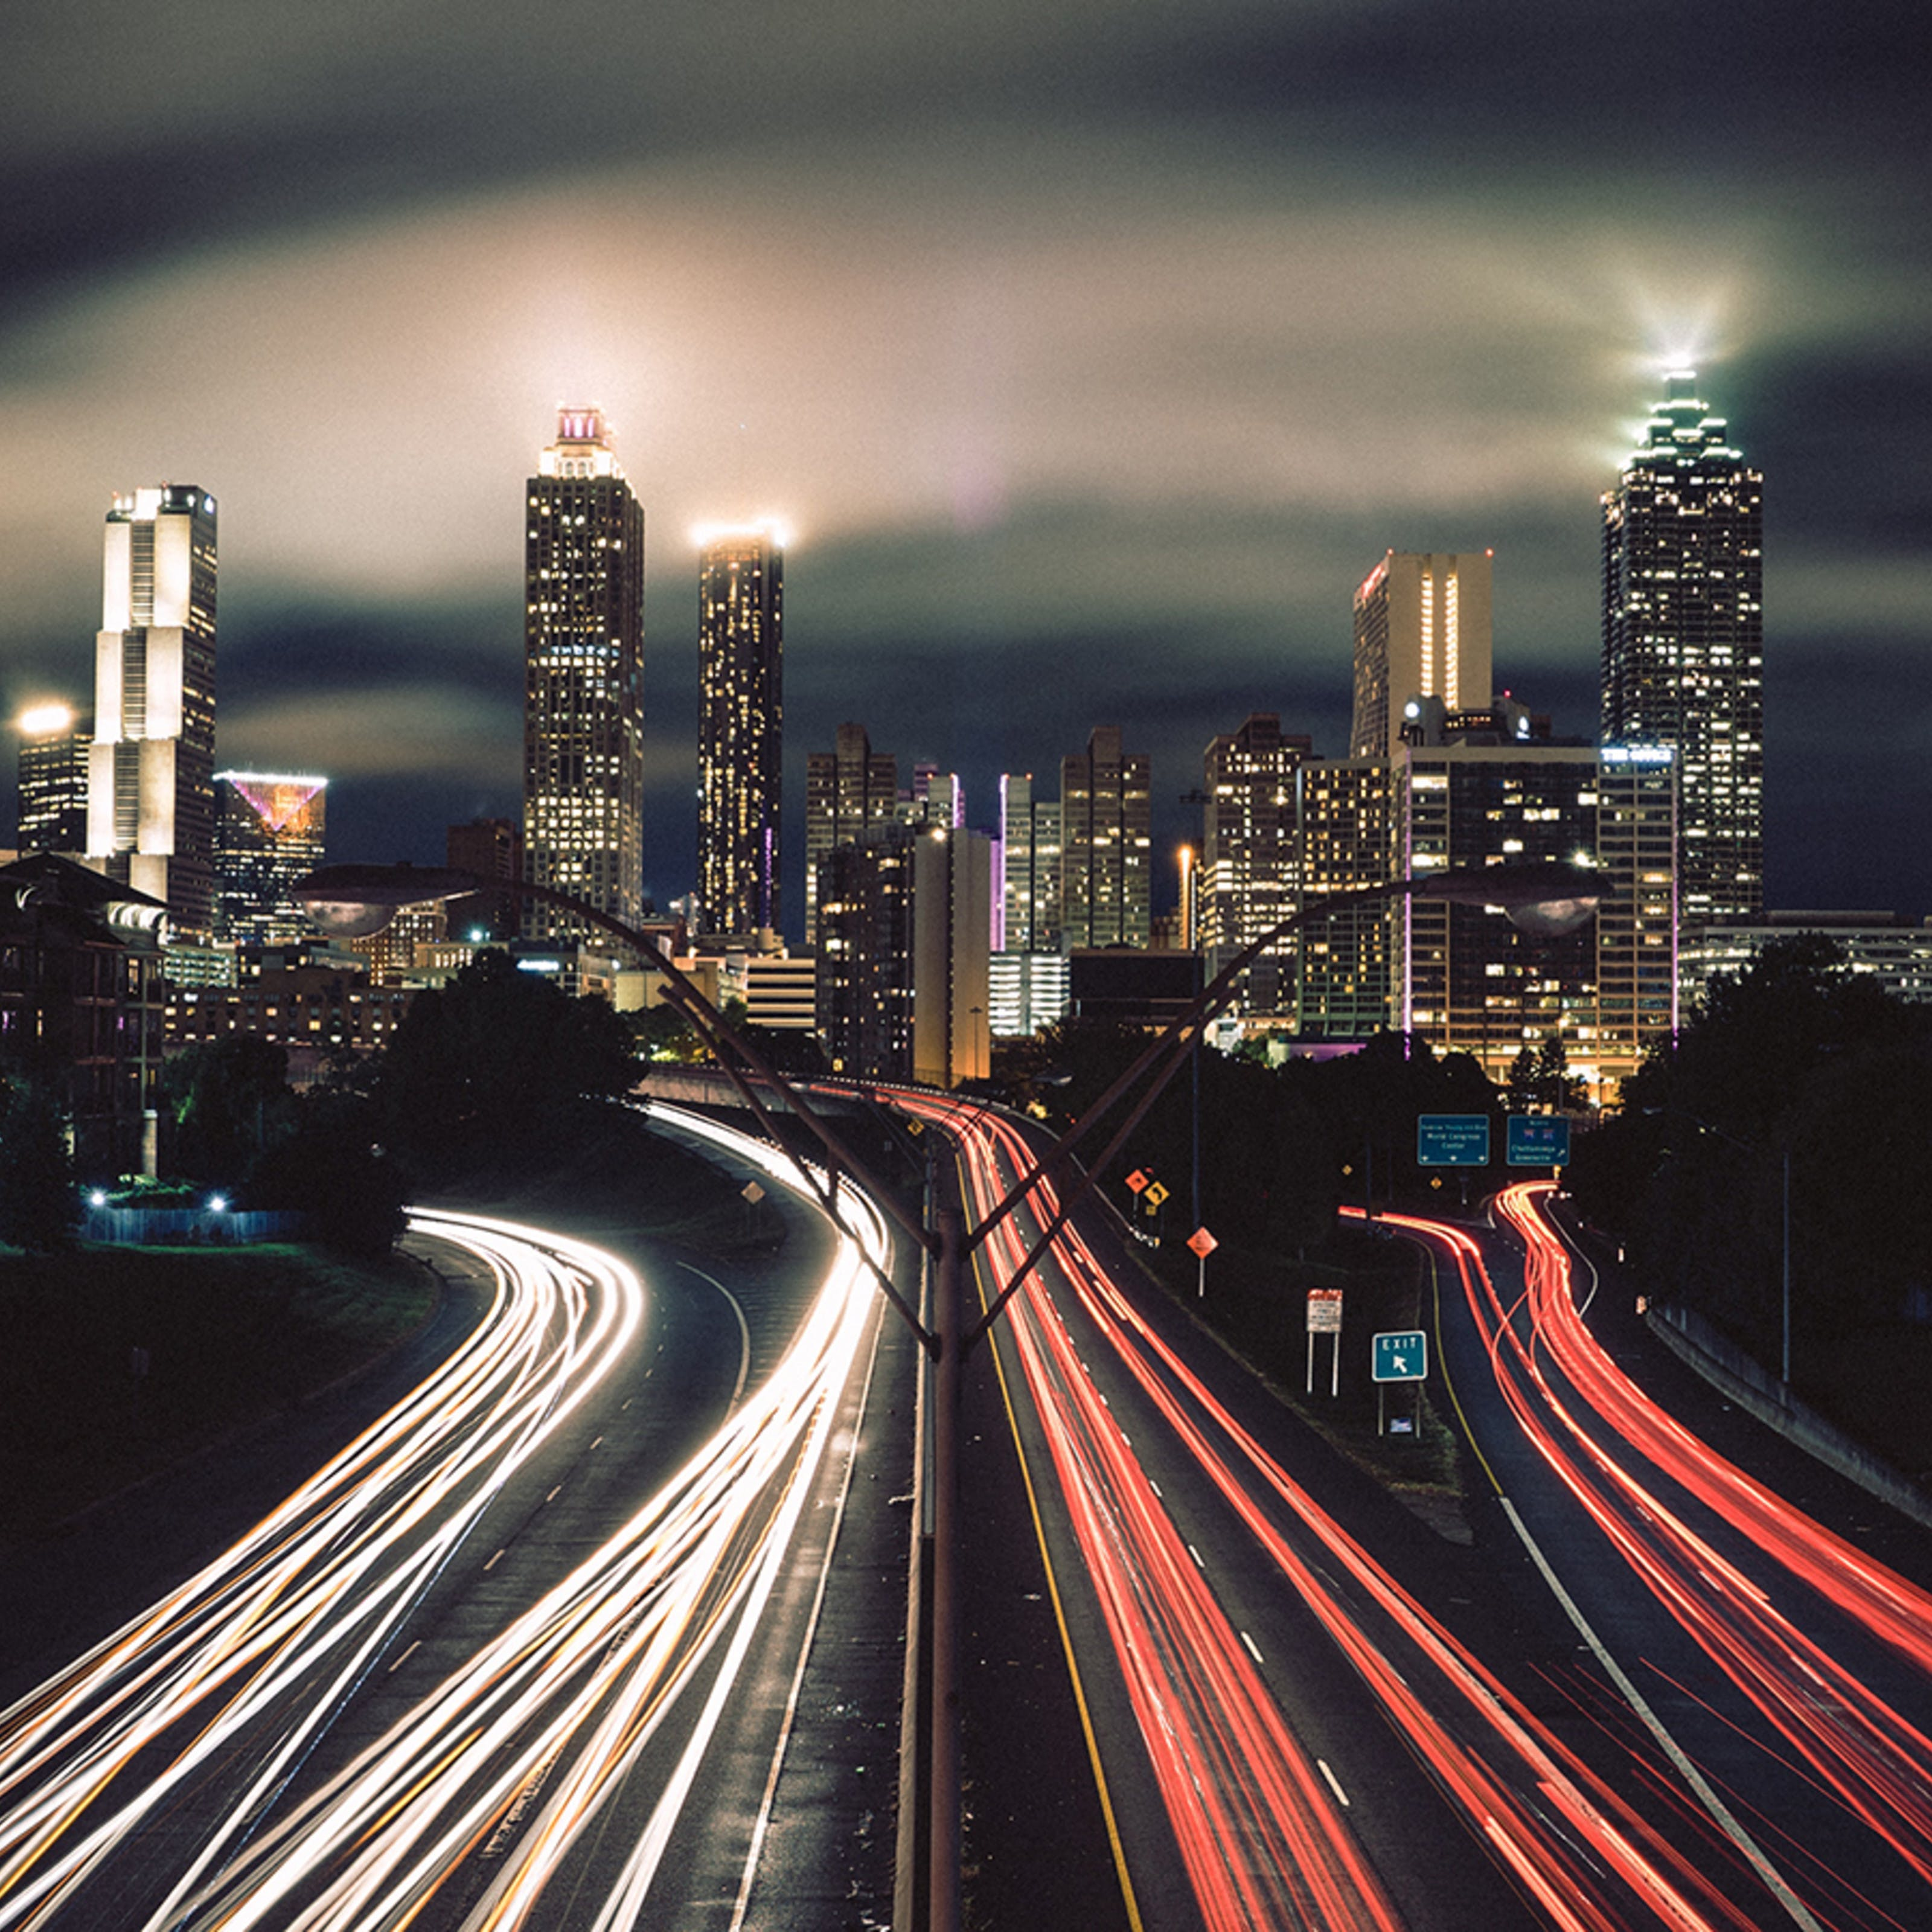 Time lapse photograph of a city at night